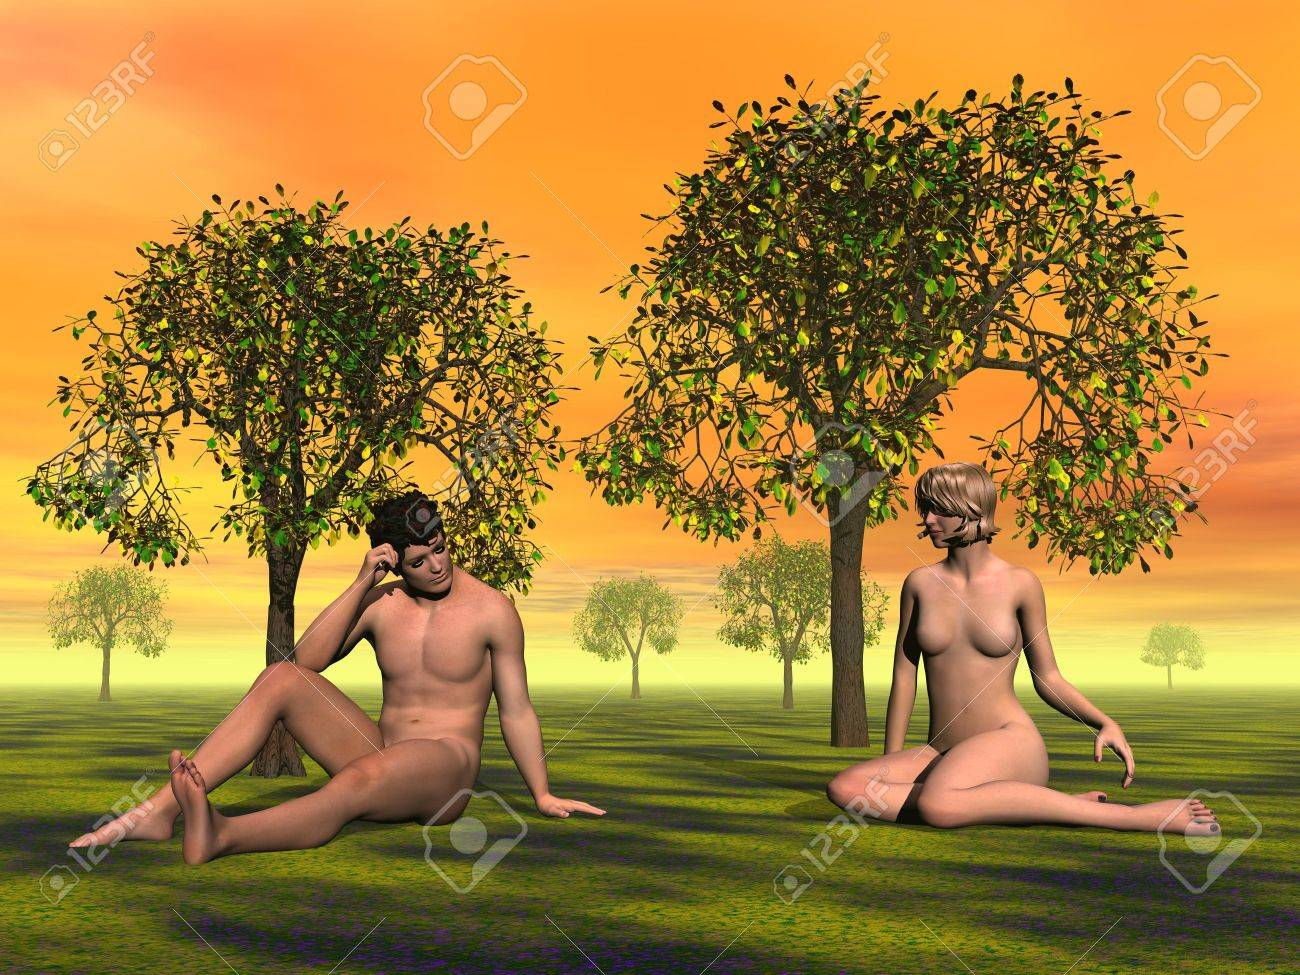 Naked Adam and Eve sitting on the grass in Eden garden by orange sunset Stock Photo - 12619577